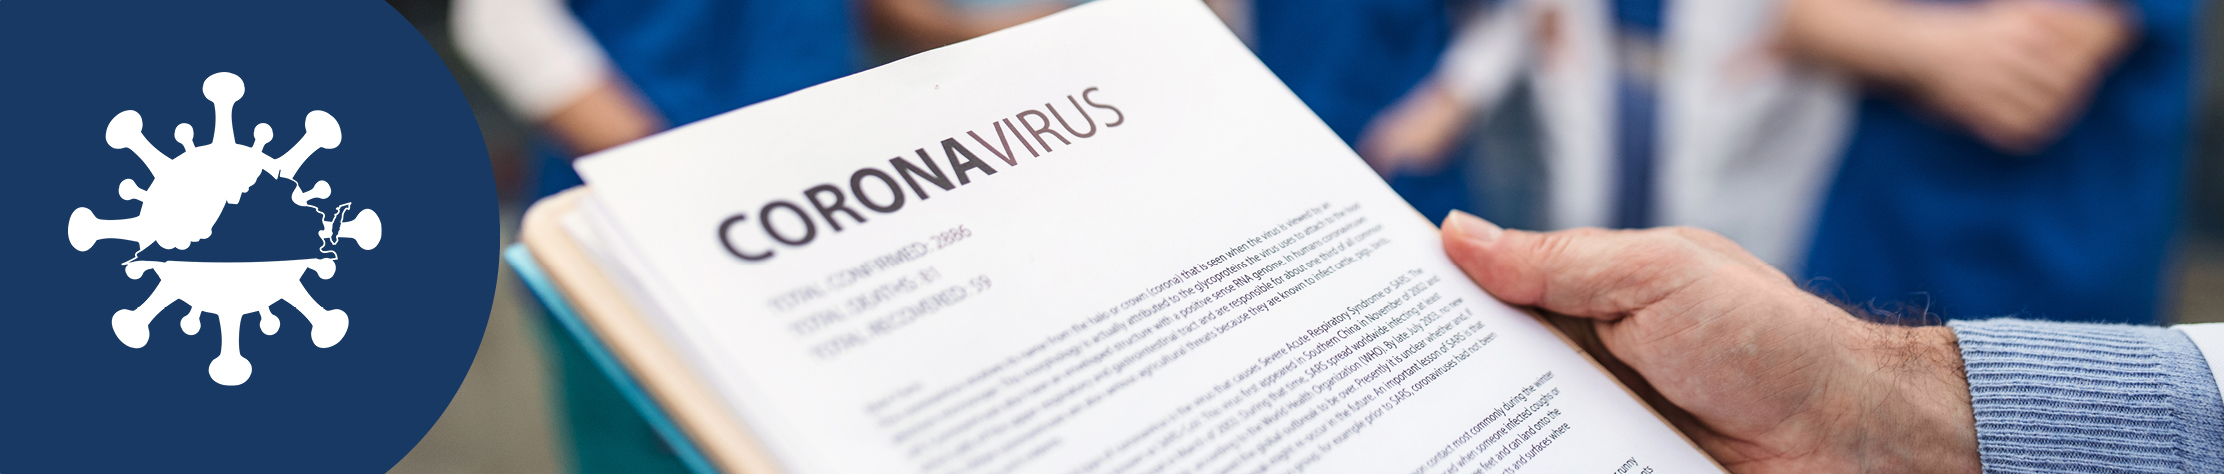 person holding Coronavirus information sheet